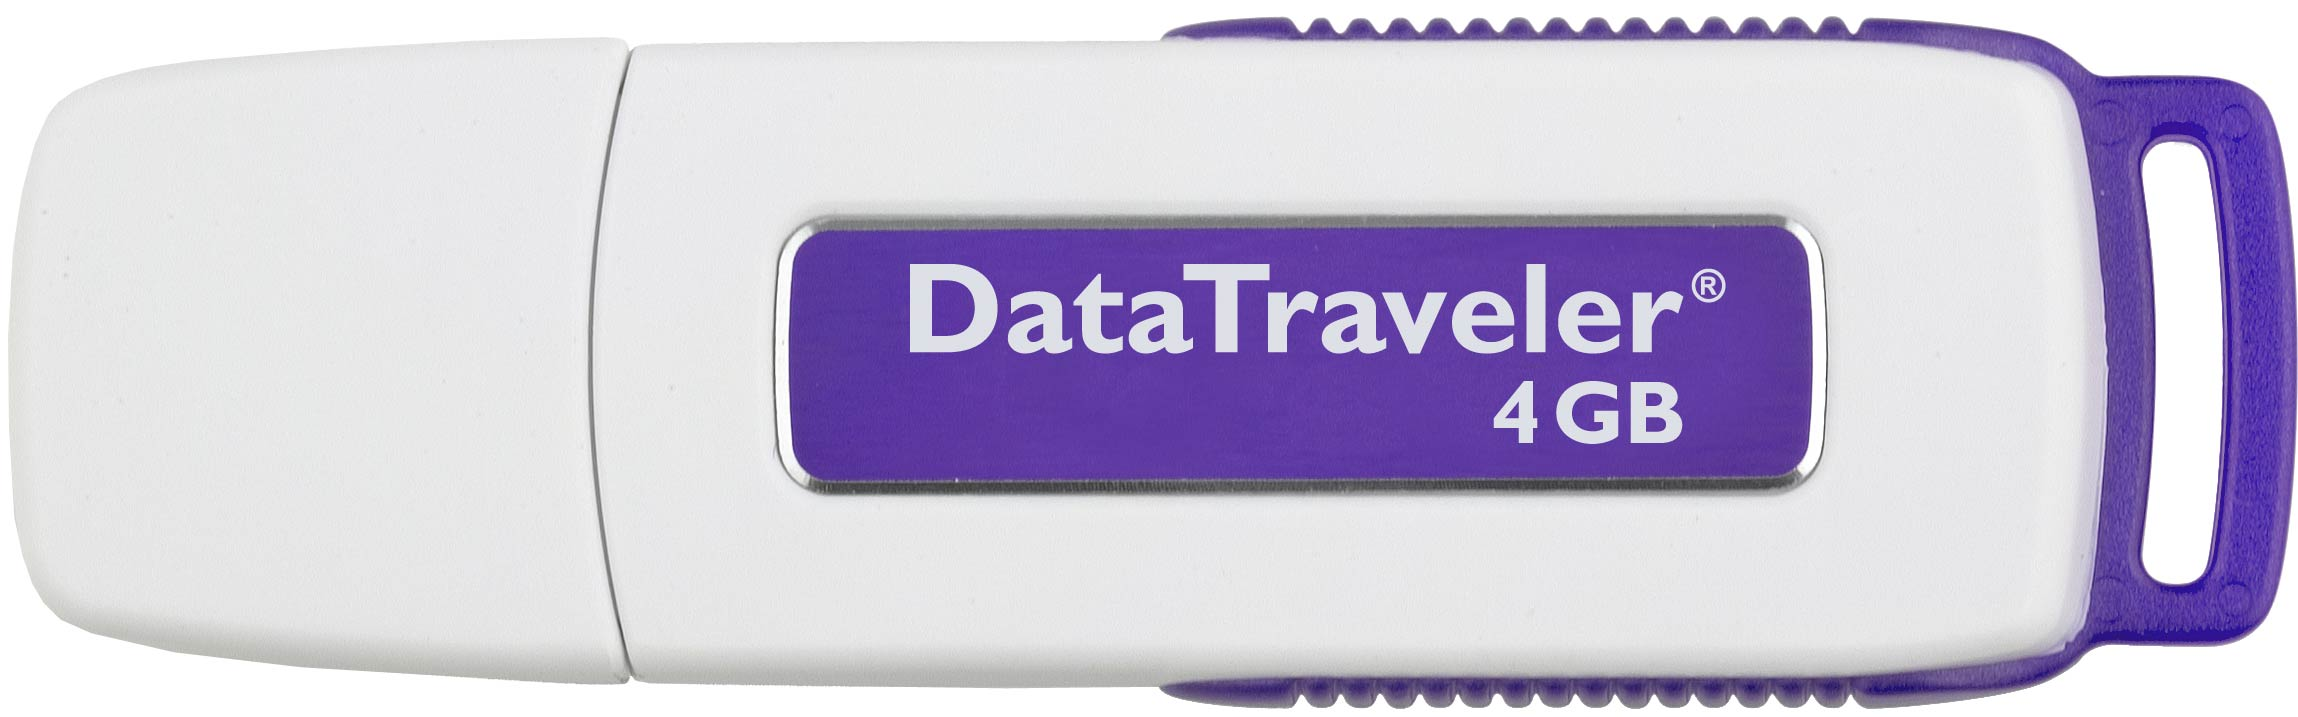 otras-memorias-datatraveler-kingston-4-gb-usb-2-2g.jpg